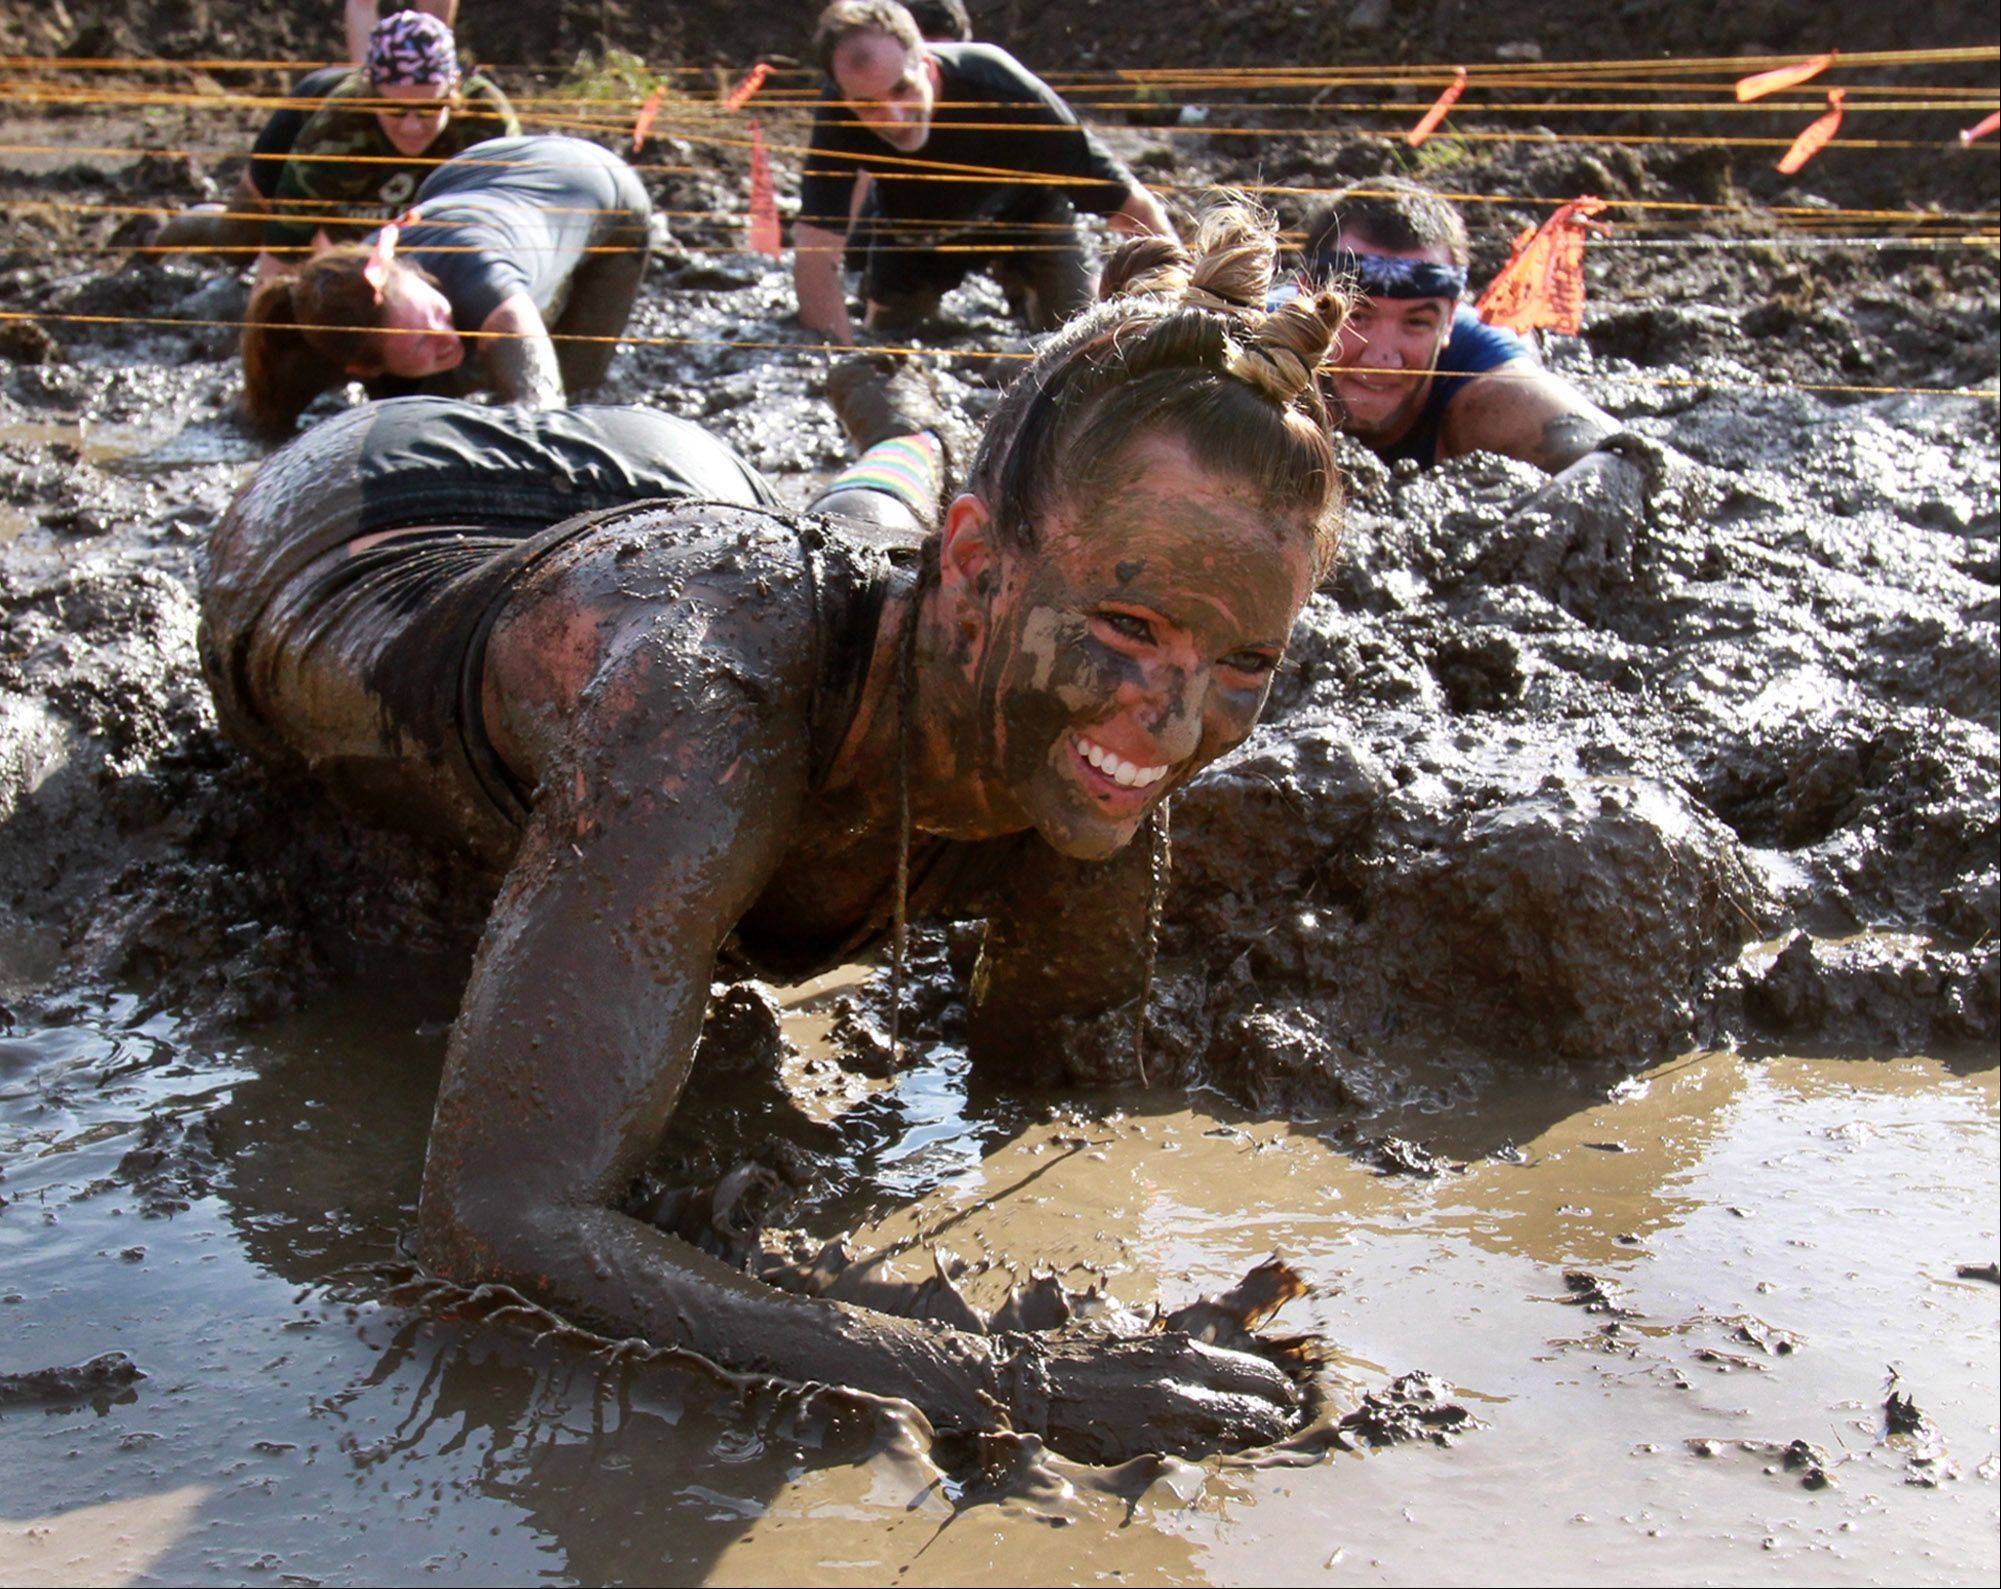 Allison Barton of Elk Grove Village crawls in mud during the Eat Dirt Mud Run at Willow Creek Community Church in South Barrington in September.